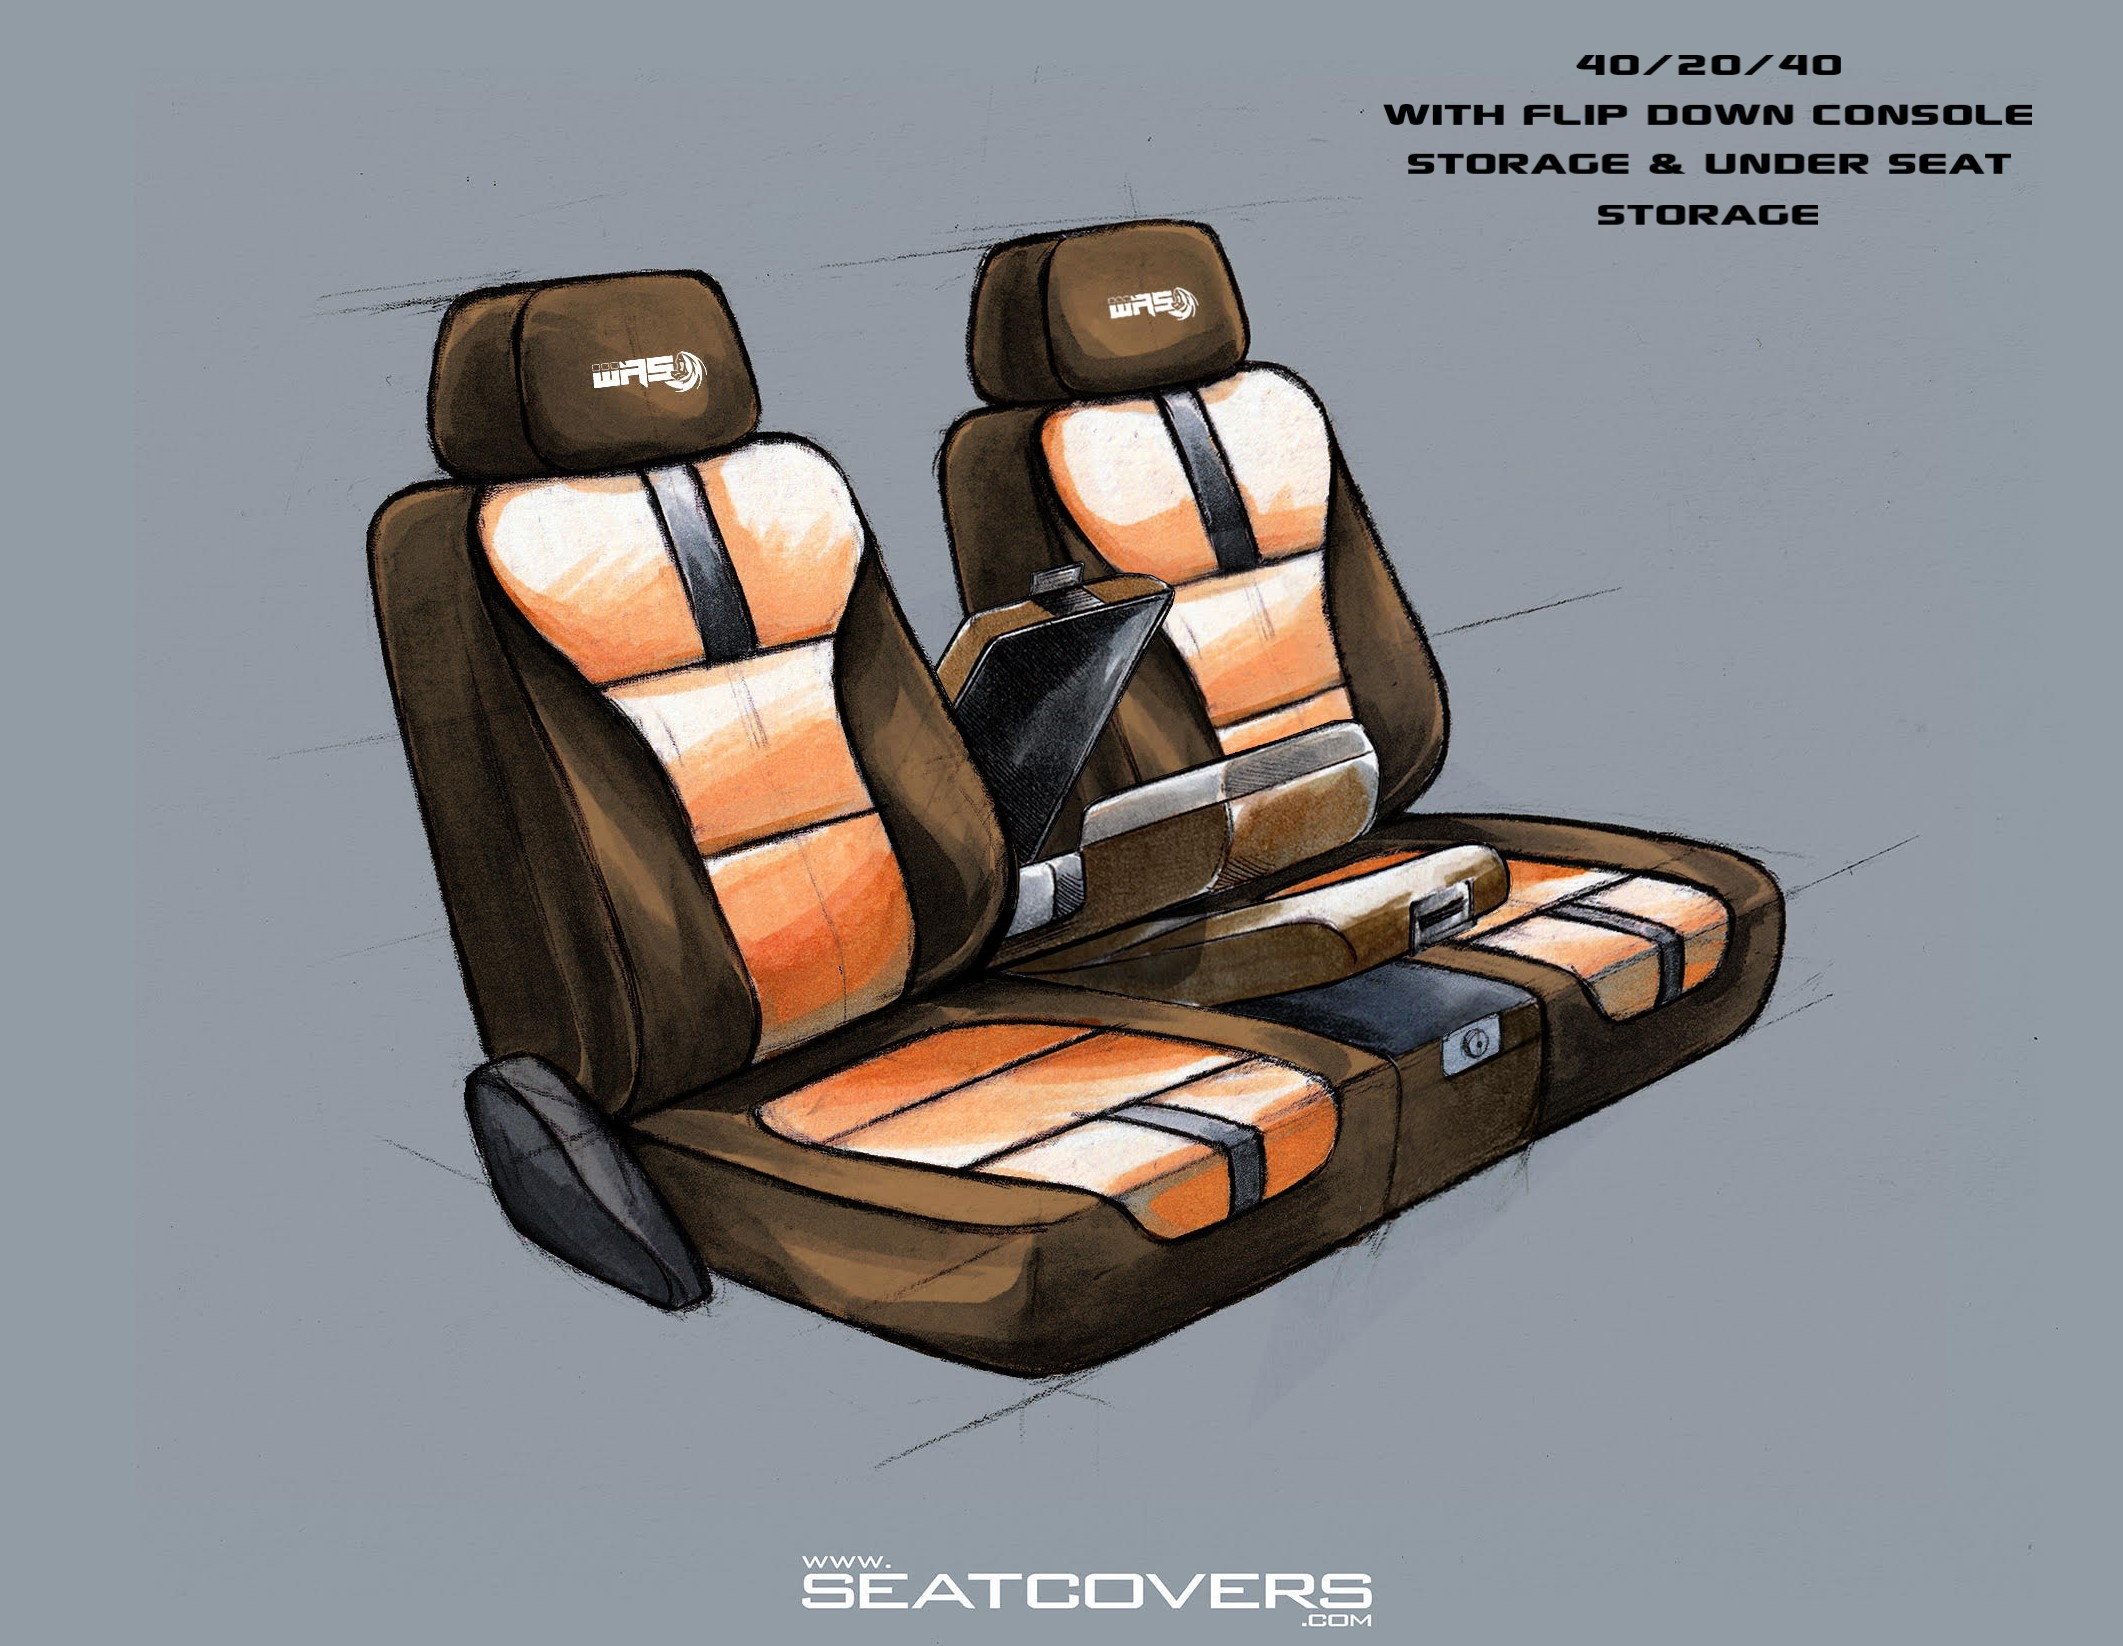 ford seatcovers front seats seatcovers.com